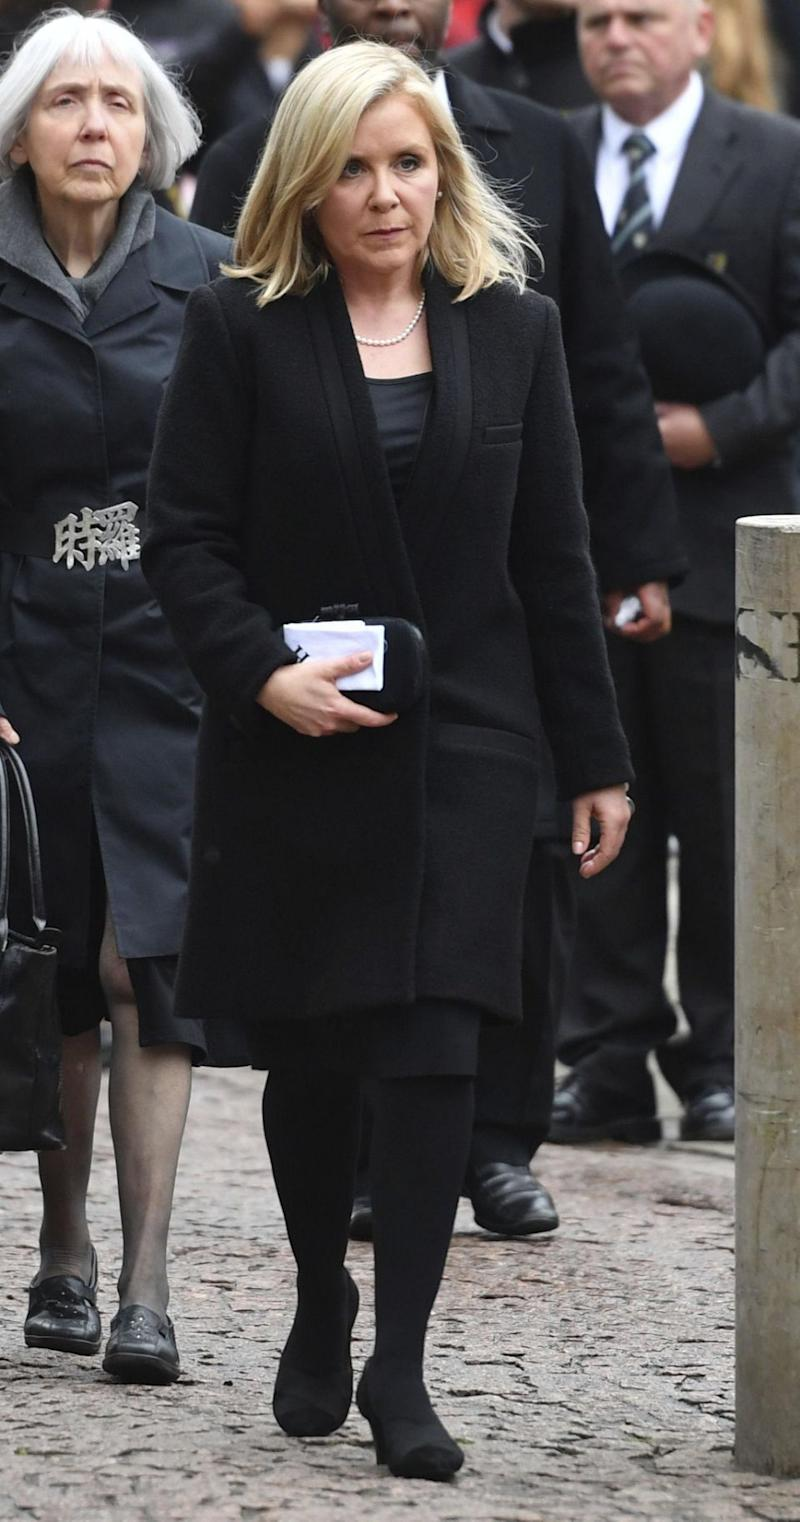 His daughter, Lucy, was also pictured on her way into the funeral service. Photo: AAP